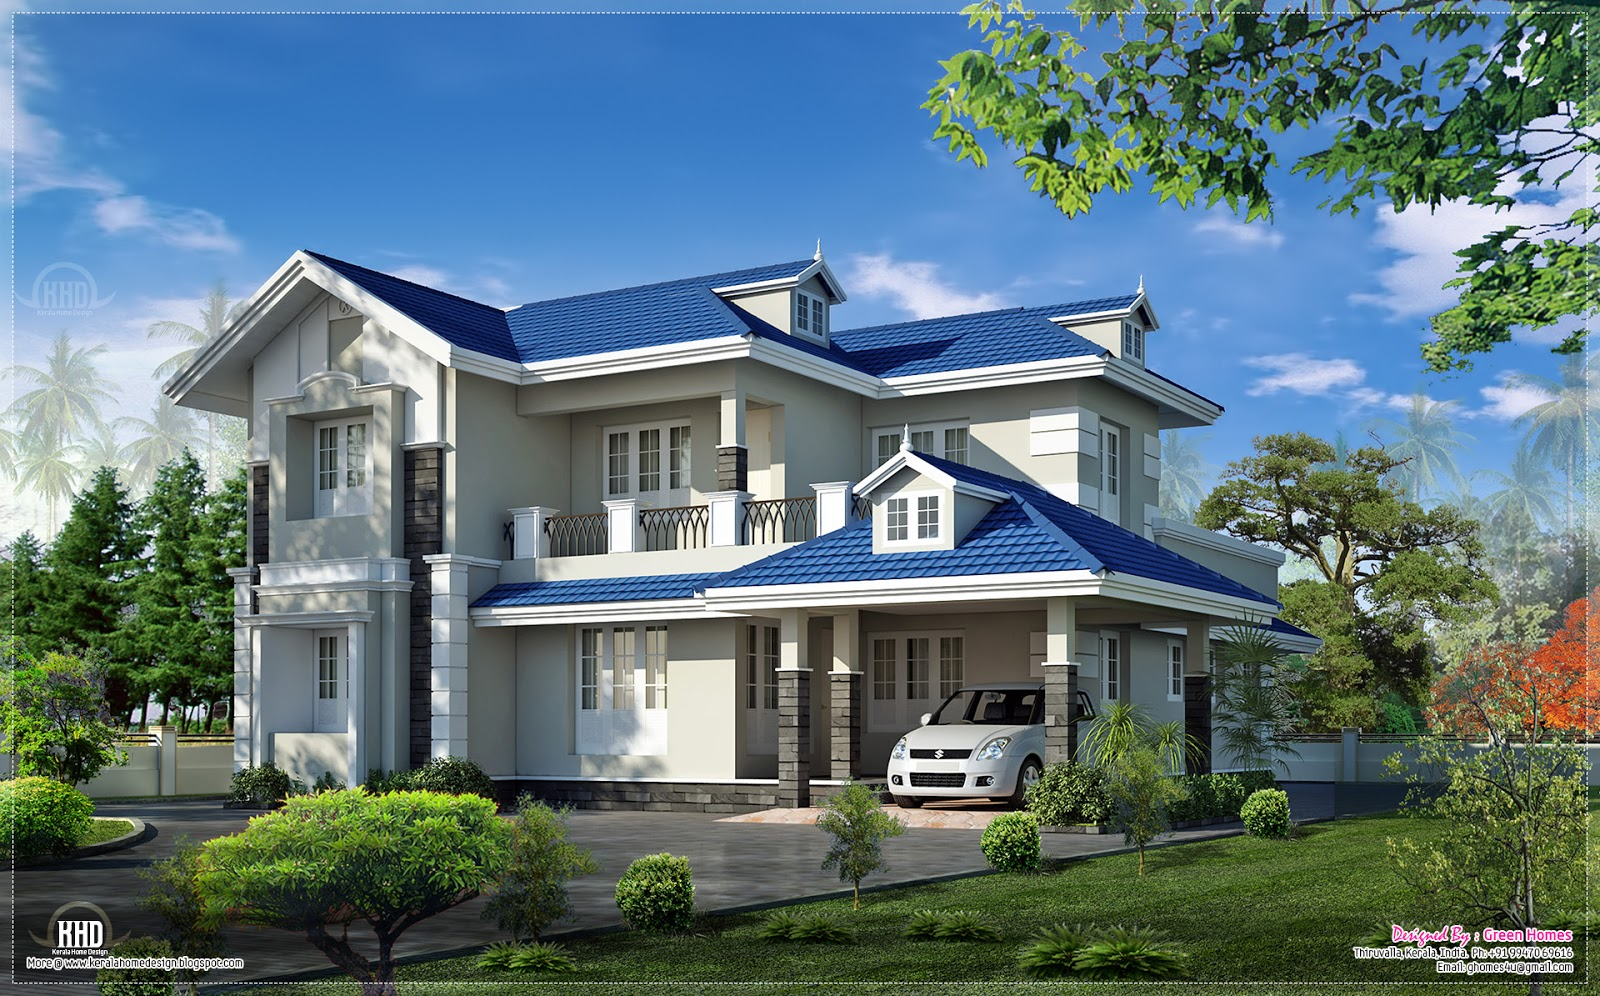 Beautiful 4 bedroom villa exterior house design plans for Beautiful 5 bedroom house plans with pictures